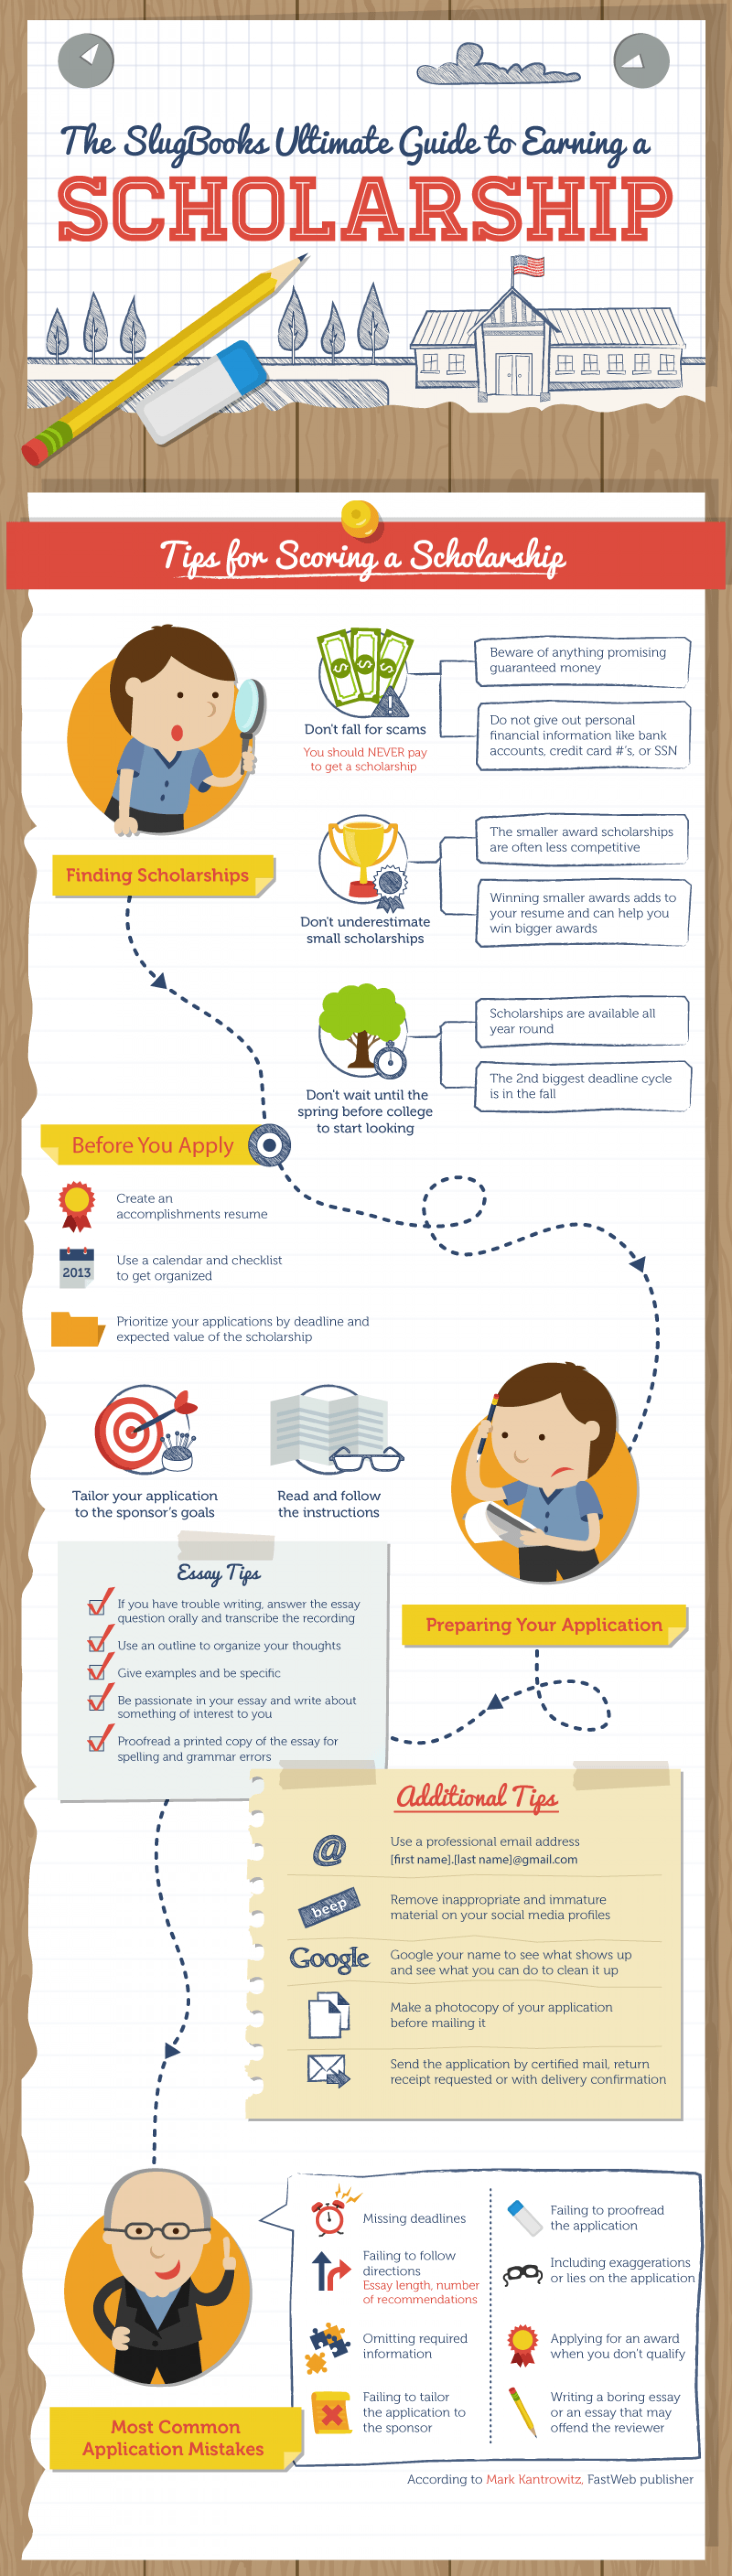 The Ultimate Guide to Earning a Scholarship Infographic